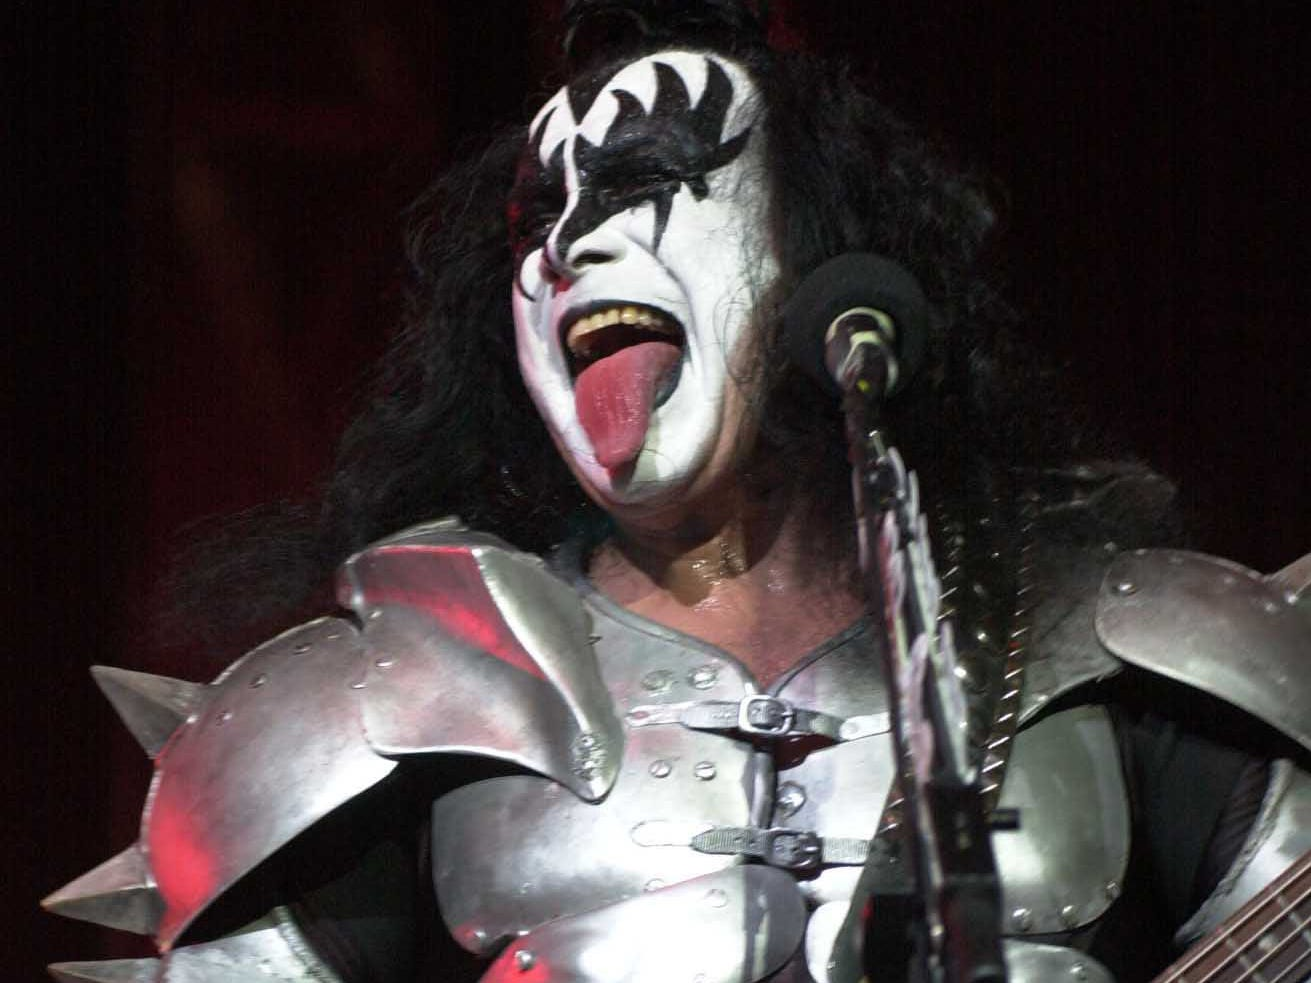 Gene Simmons performs during the opening of the KISS Concert in Knoxville Sunday night at Thompson-Boling Arena. 2000.